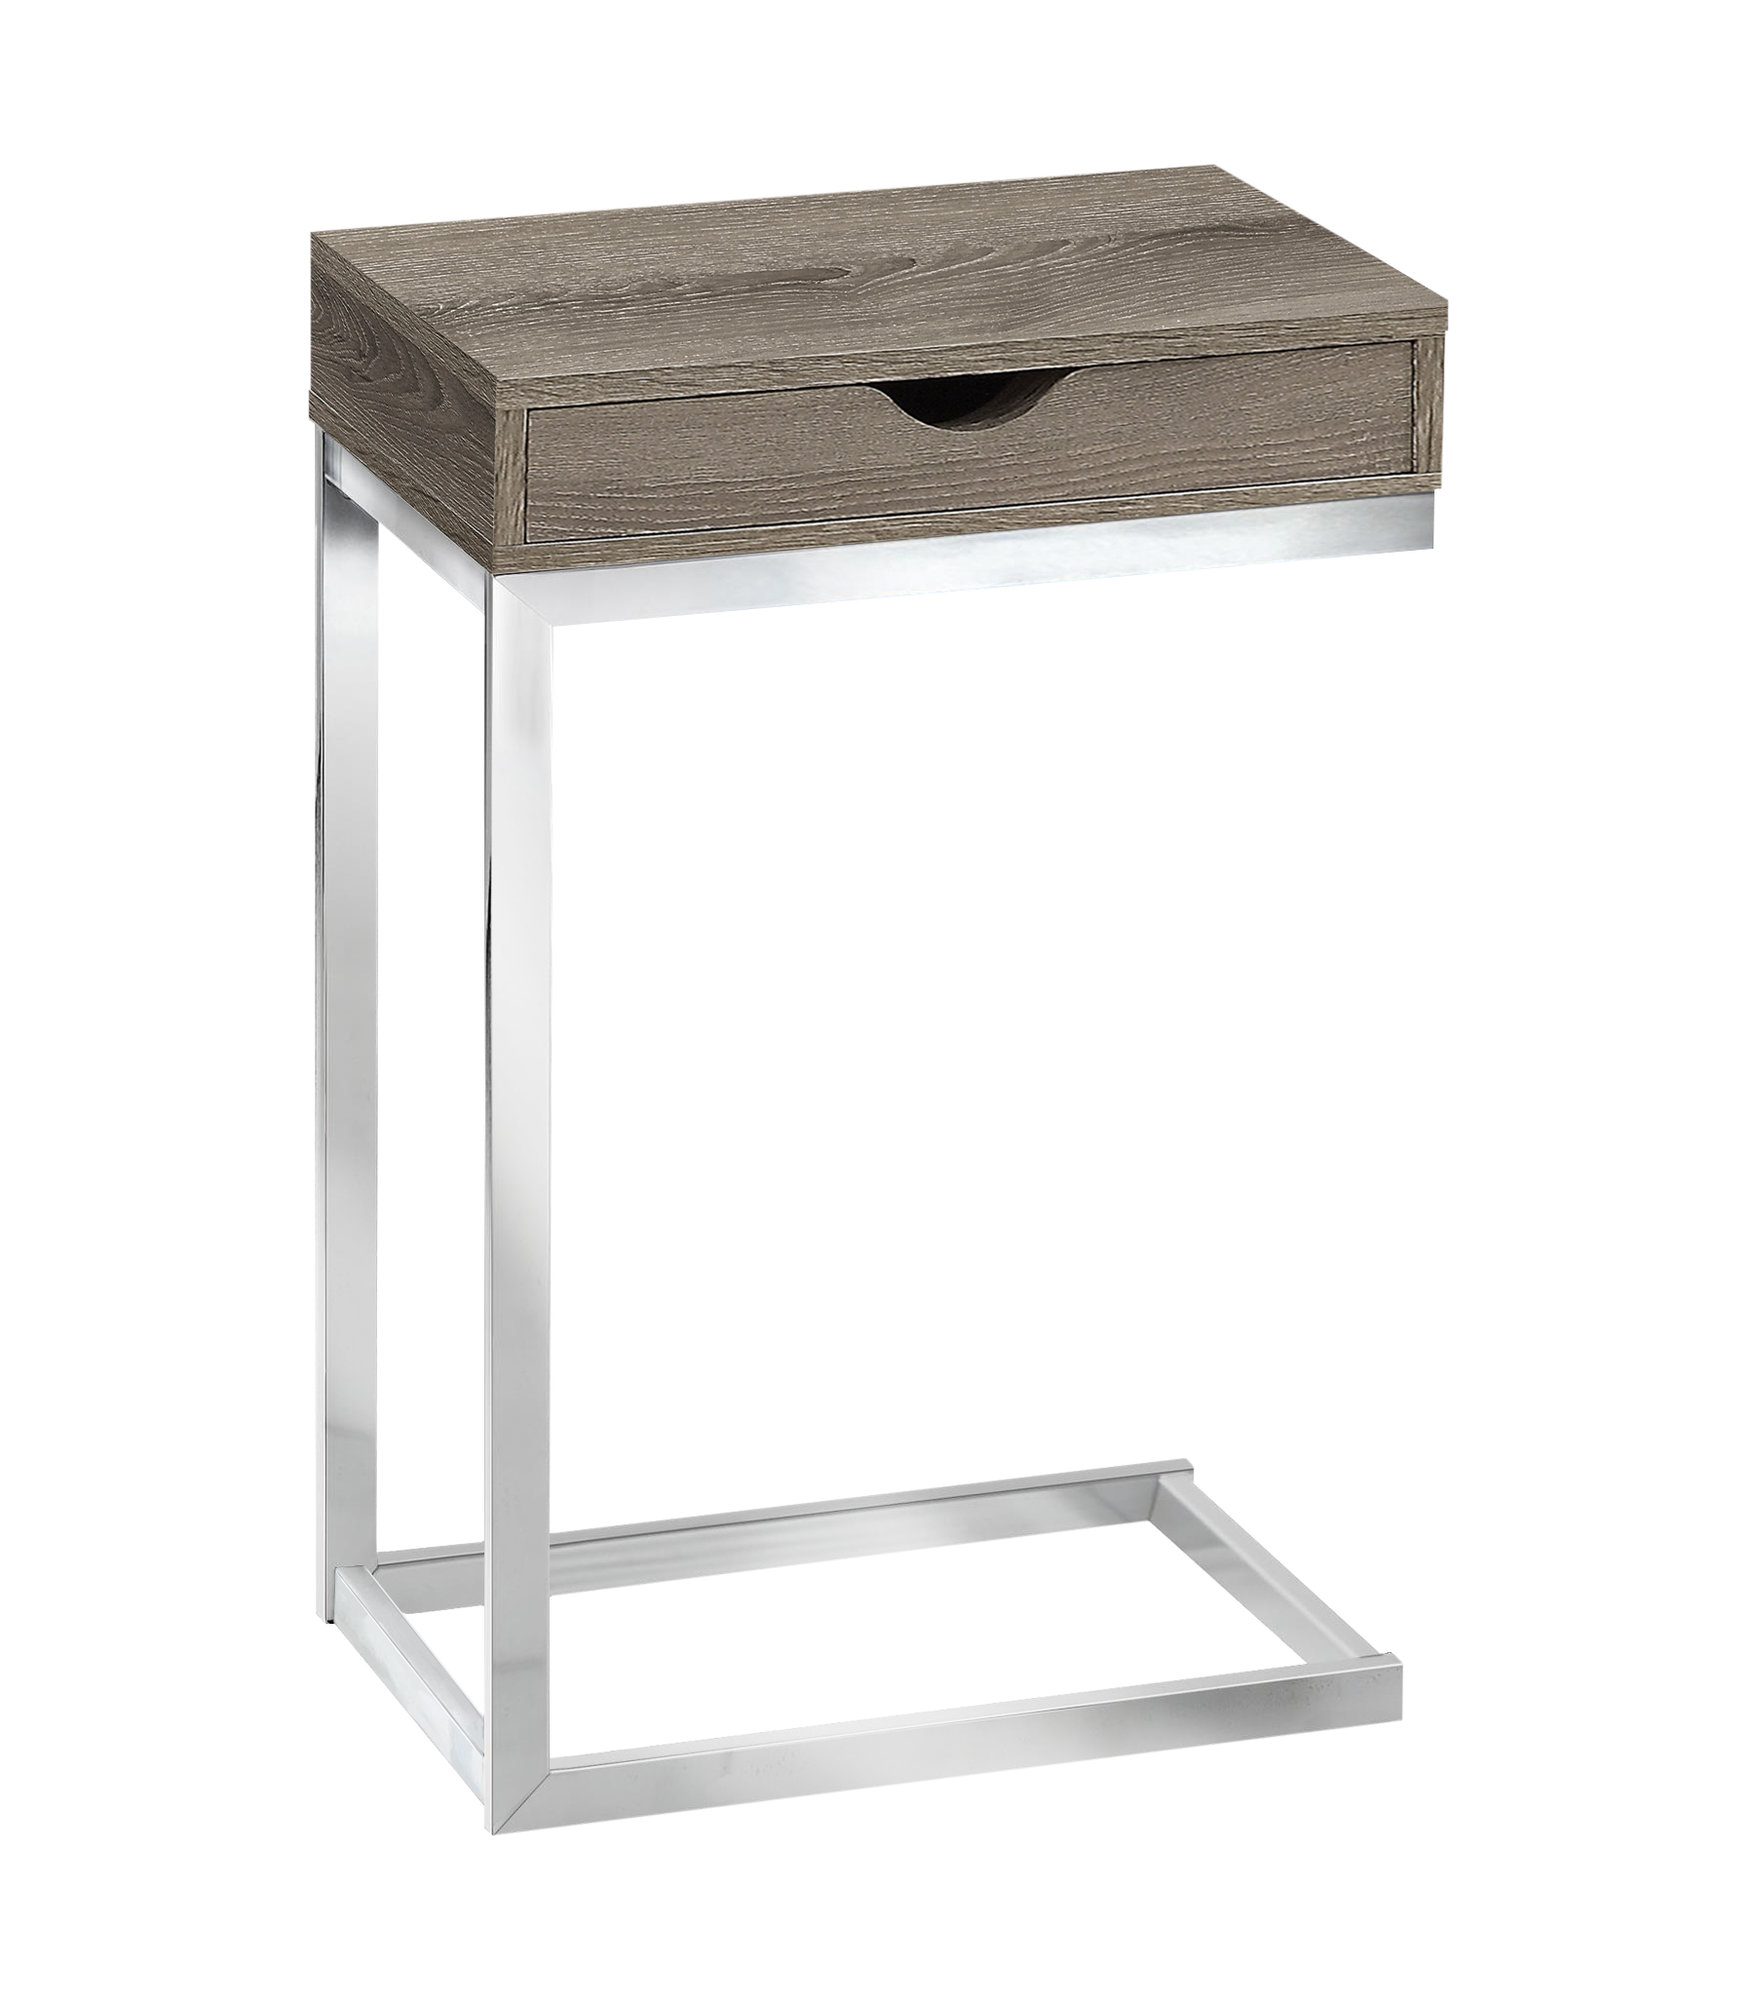 """10.25"""" x 15.75"""" x 24.5"""" Dark Taupe Finish Metal Accent Table"""